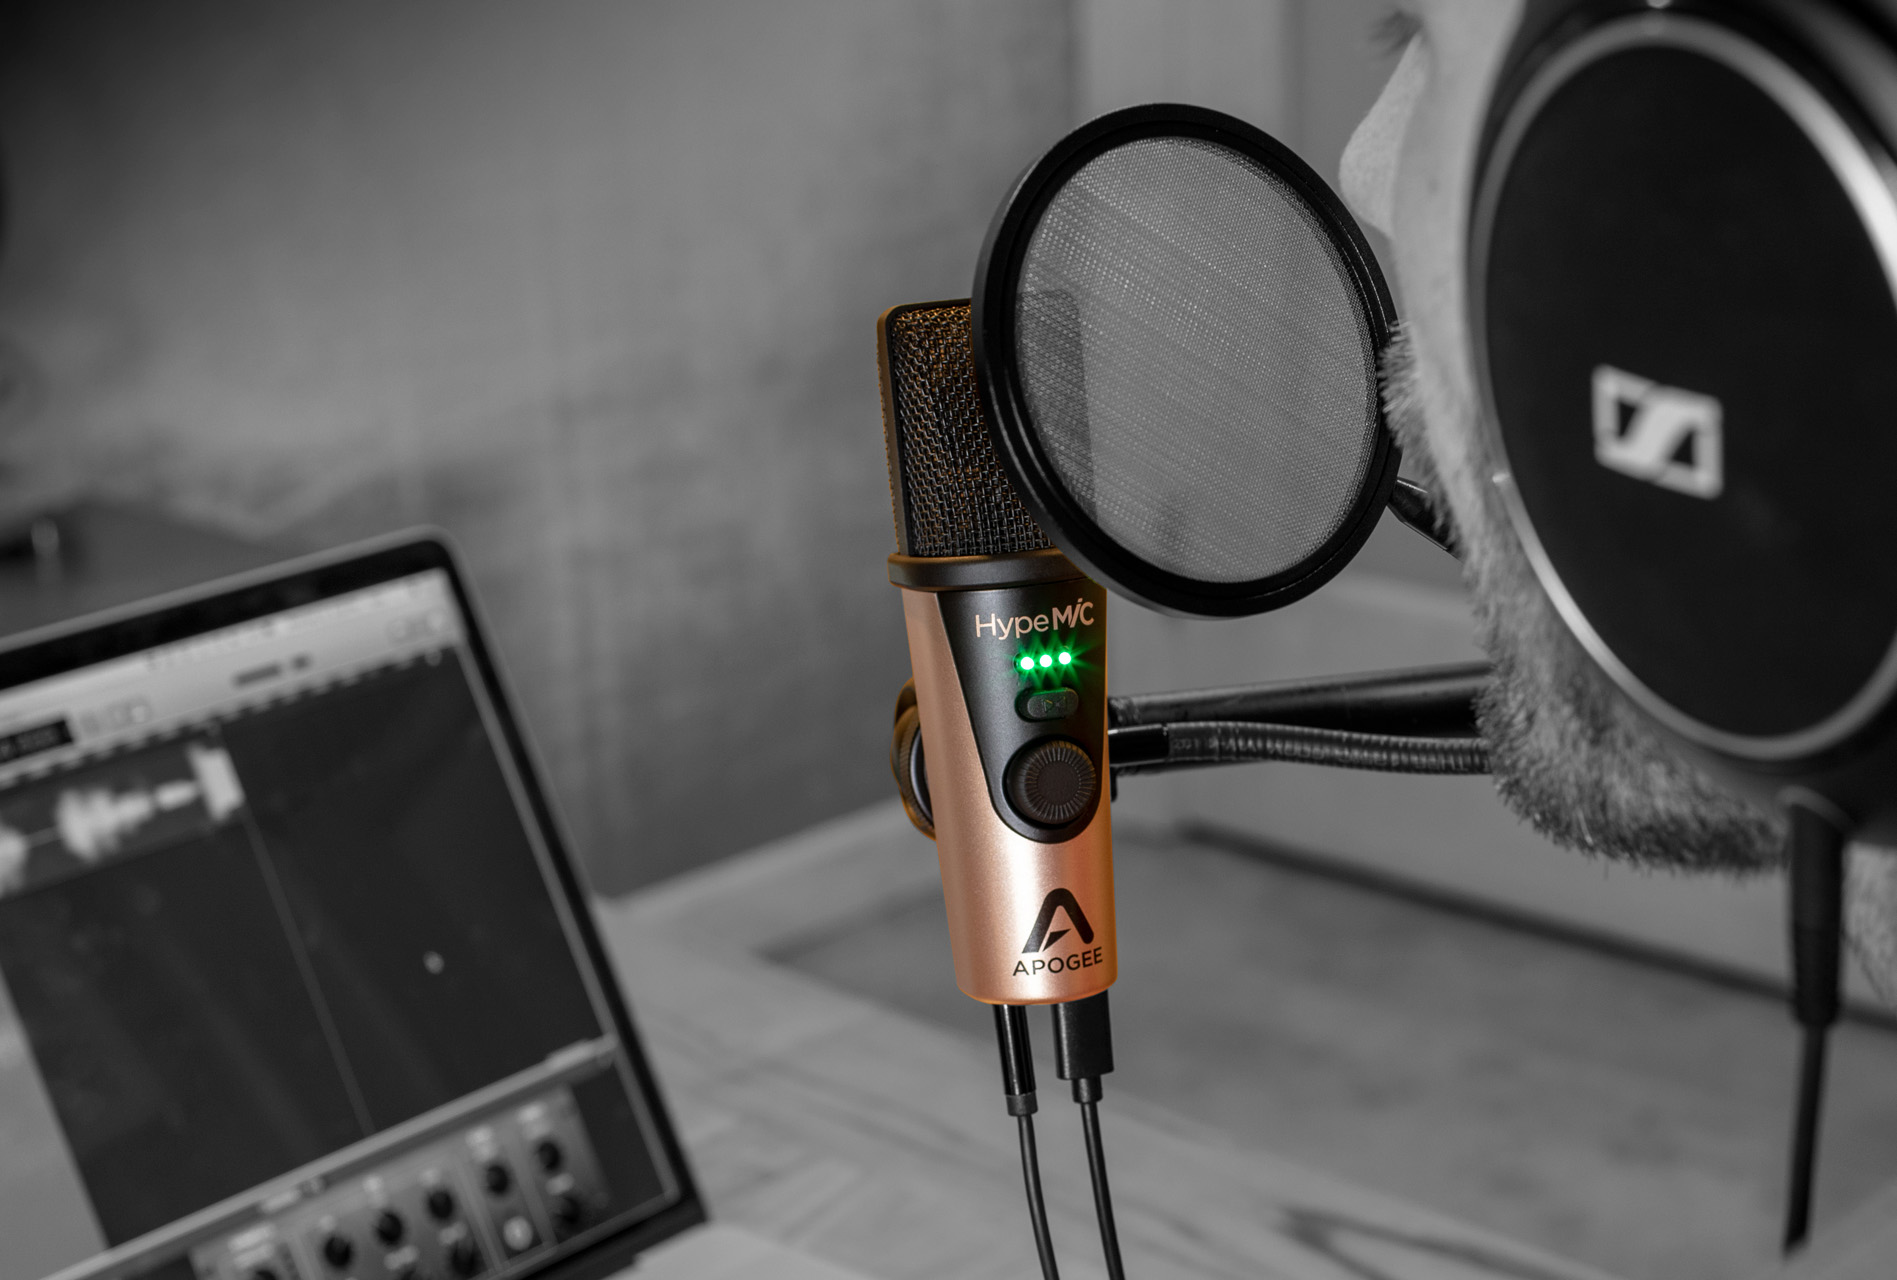 HypeMiC USB Microphone with analog compressor - Apogee